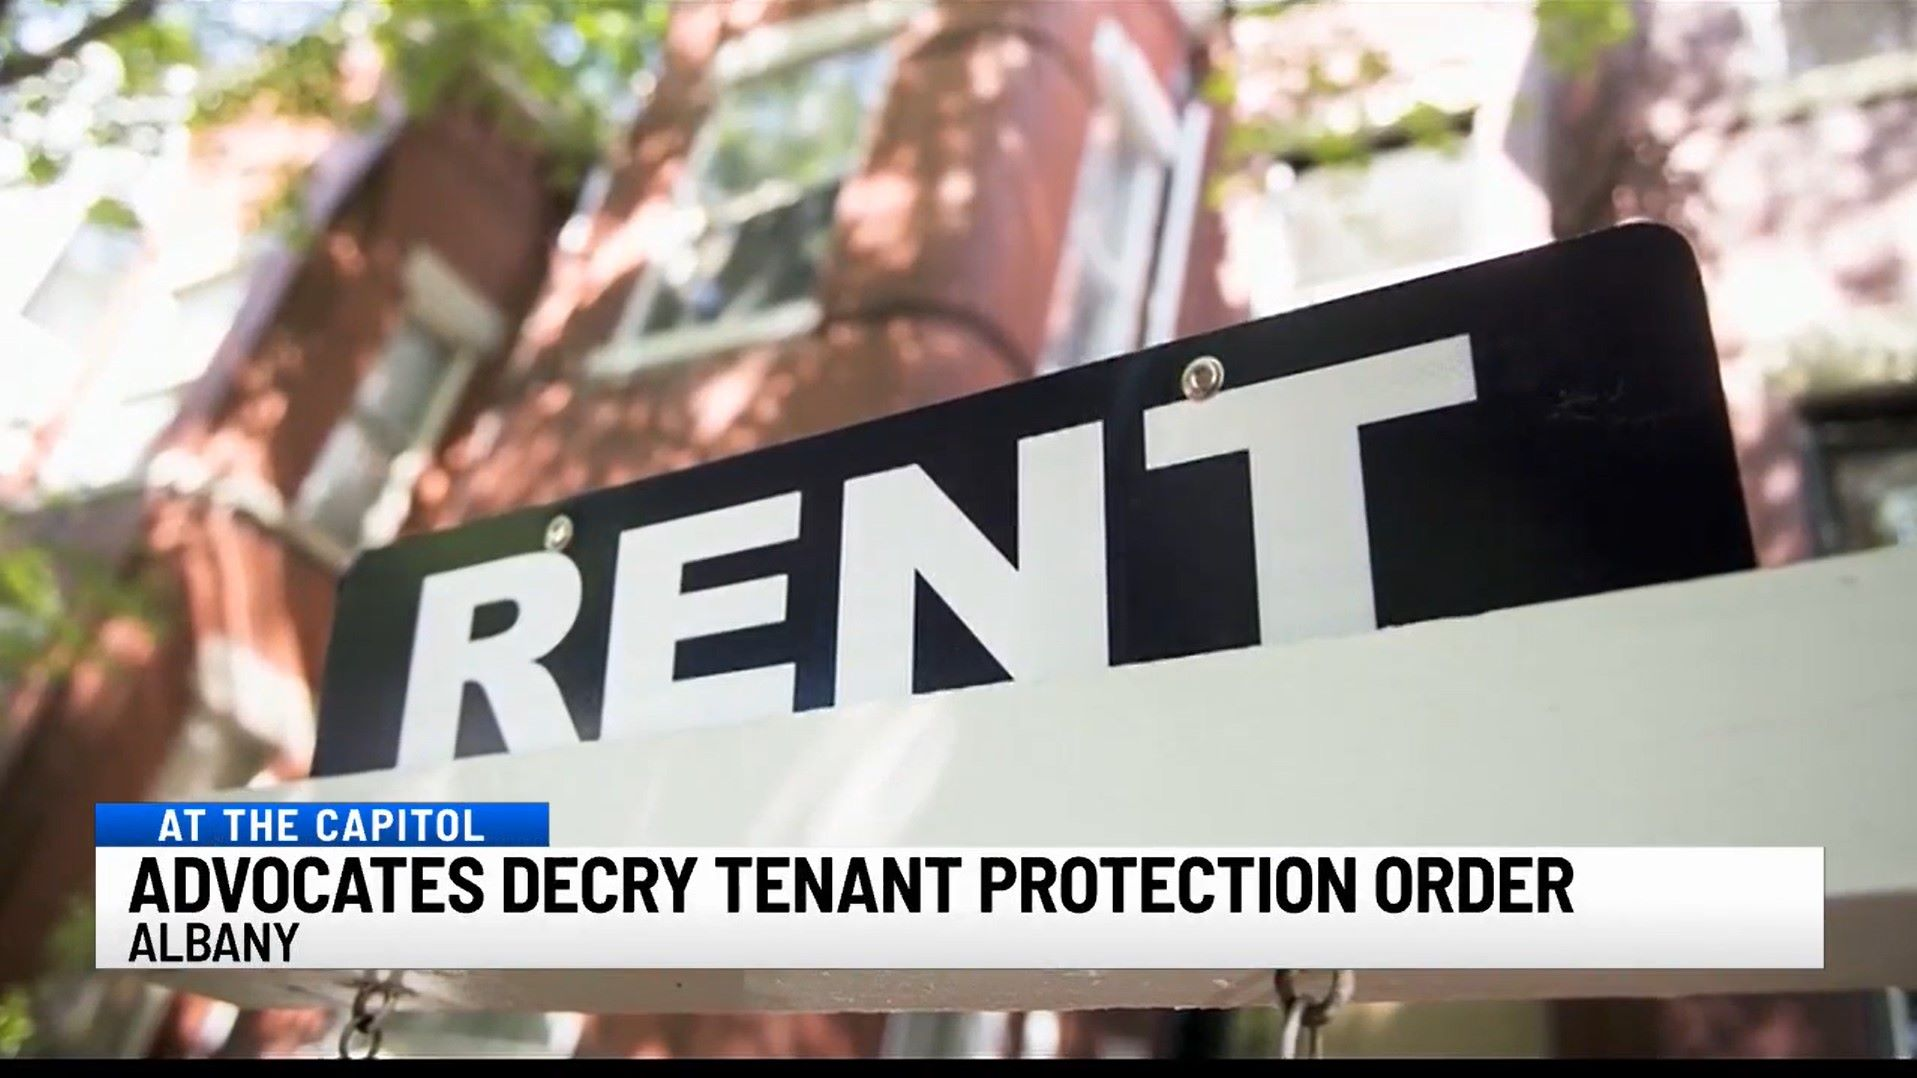 Tenant advocates say further action needed to protect renters during COVID-19 pandemic